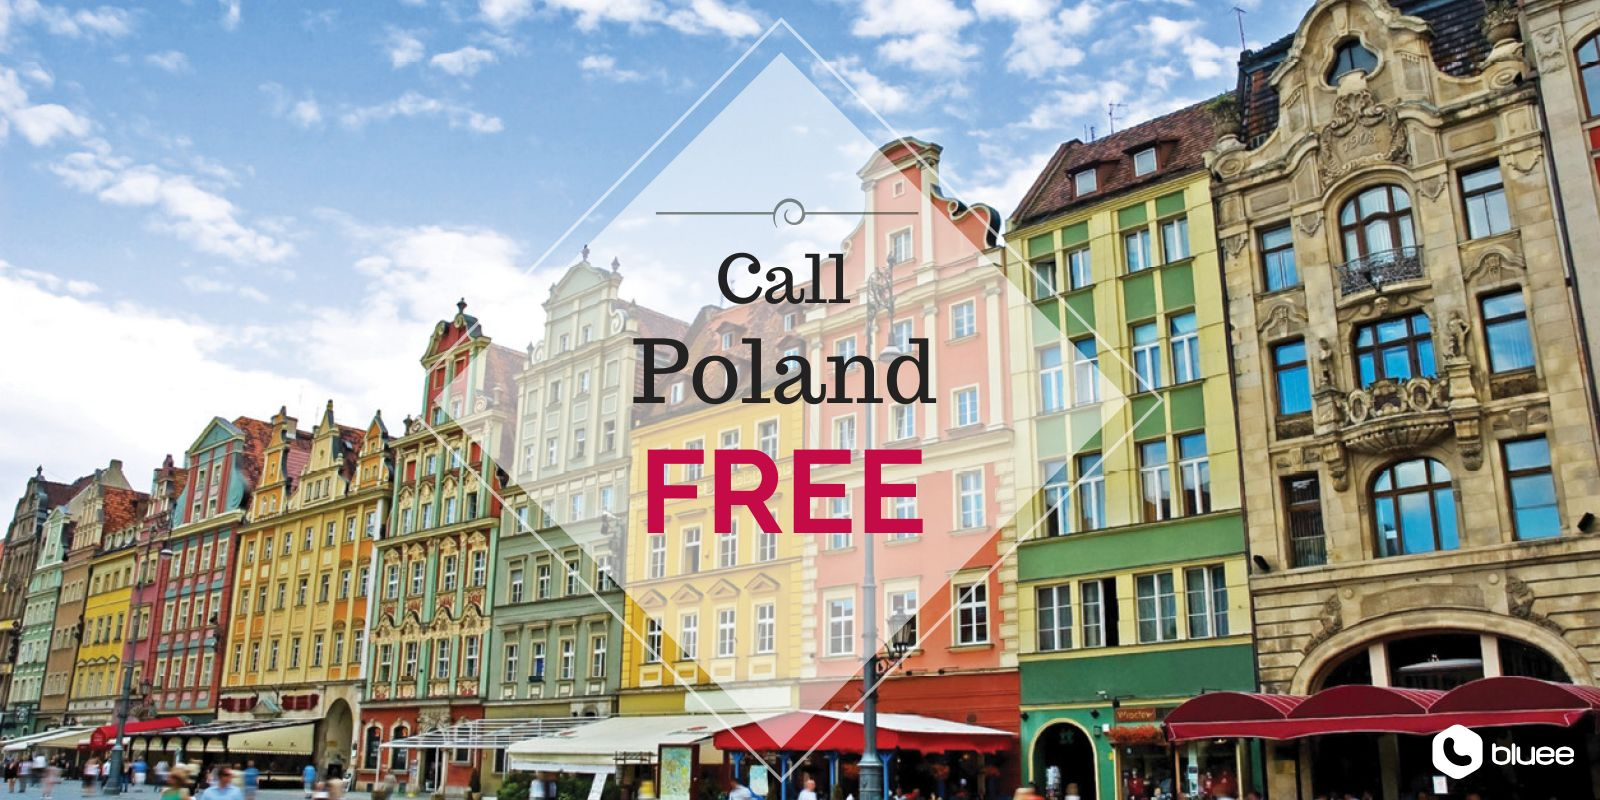 Free Friday: Call Poland For FREE